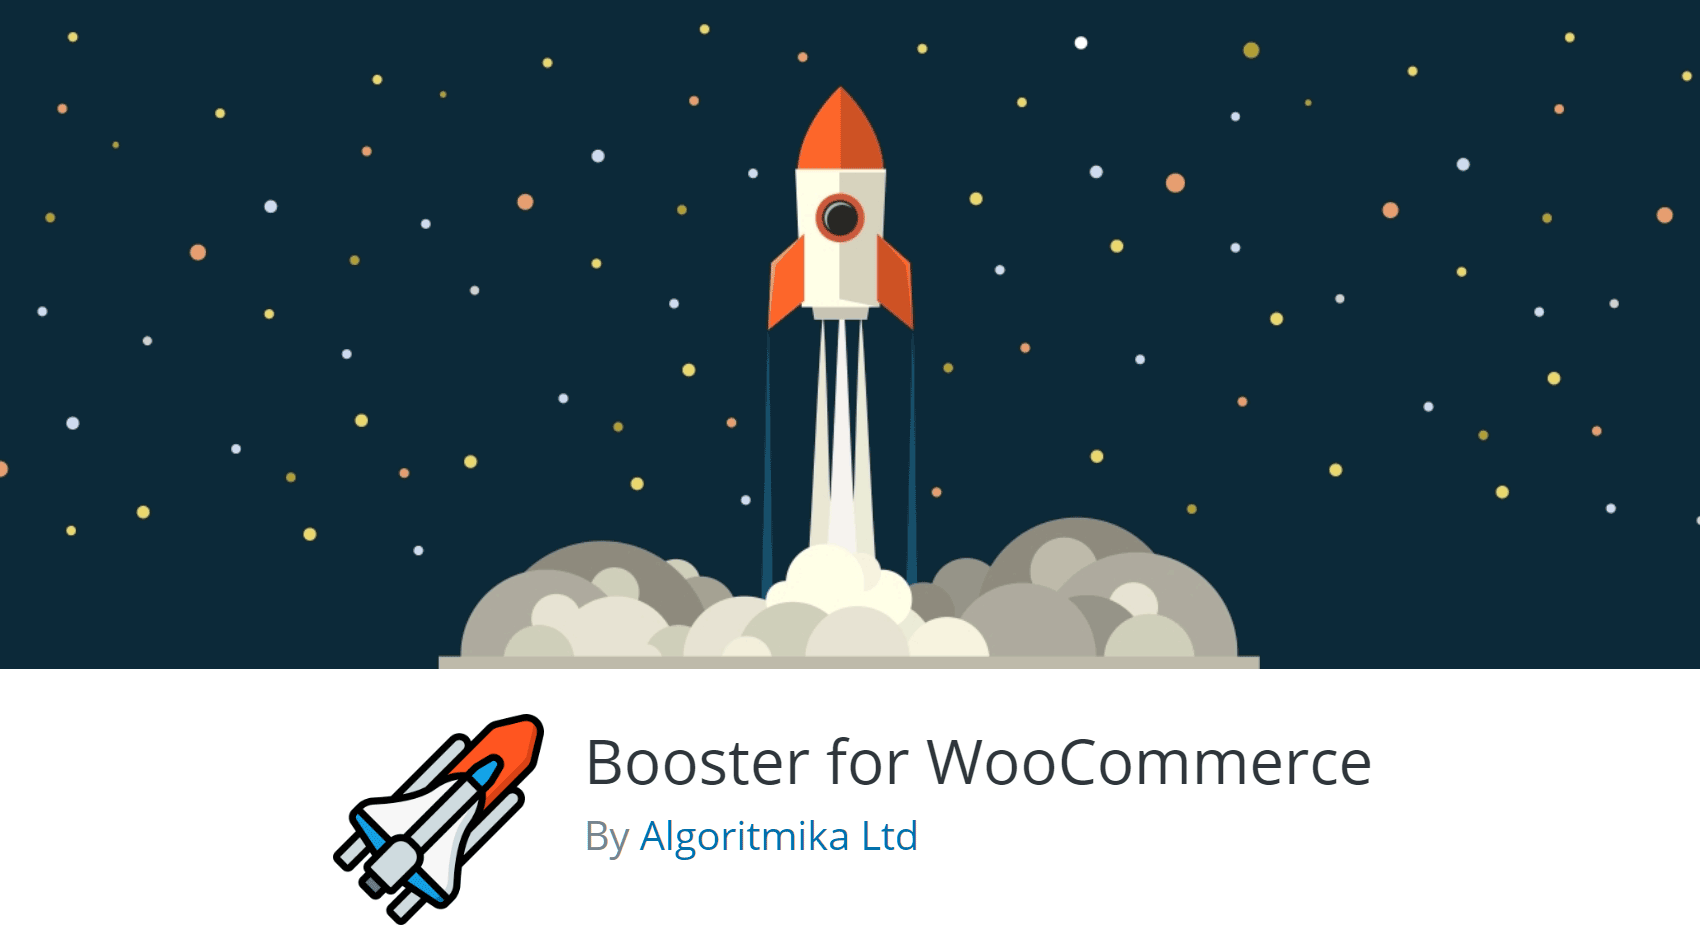 Booster For WooCommerce Review – Over 100 Modules For Your Online Store